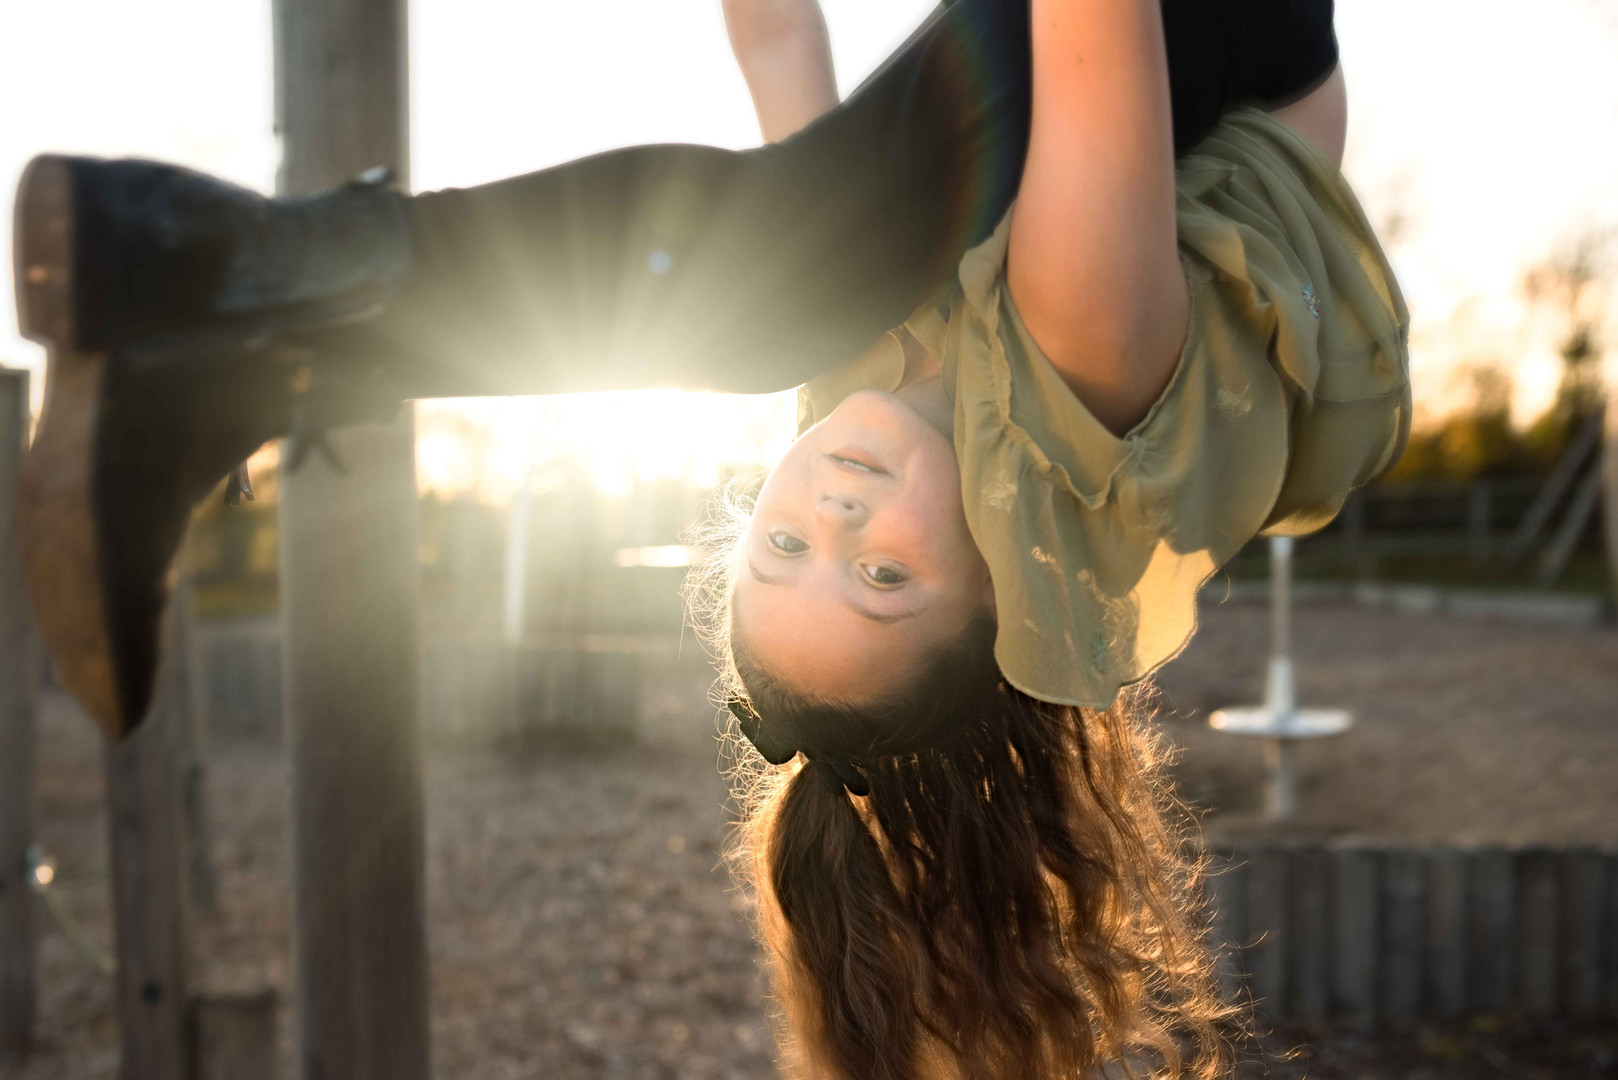 Girl hanging upside on bars in the park